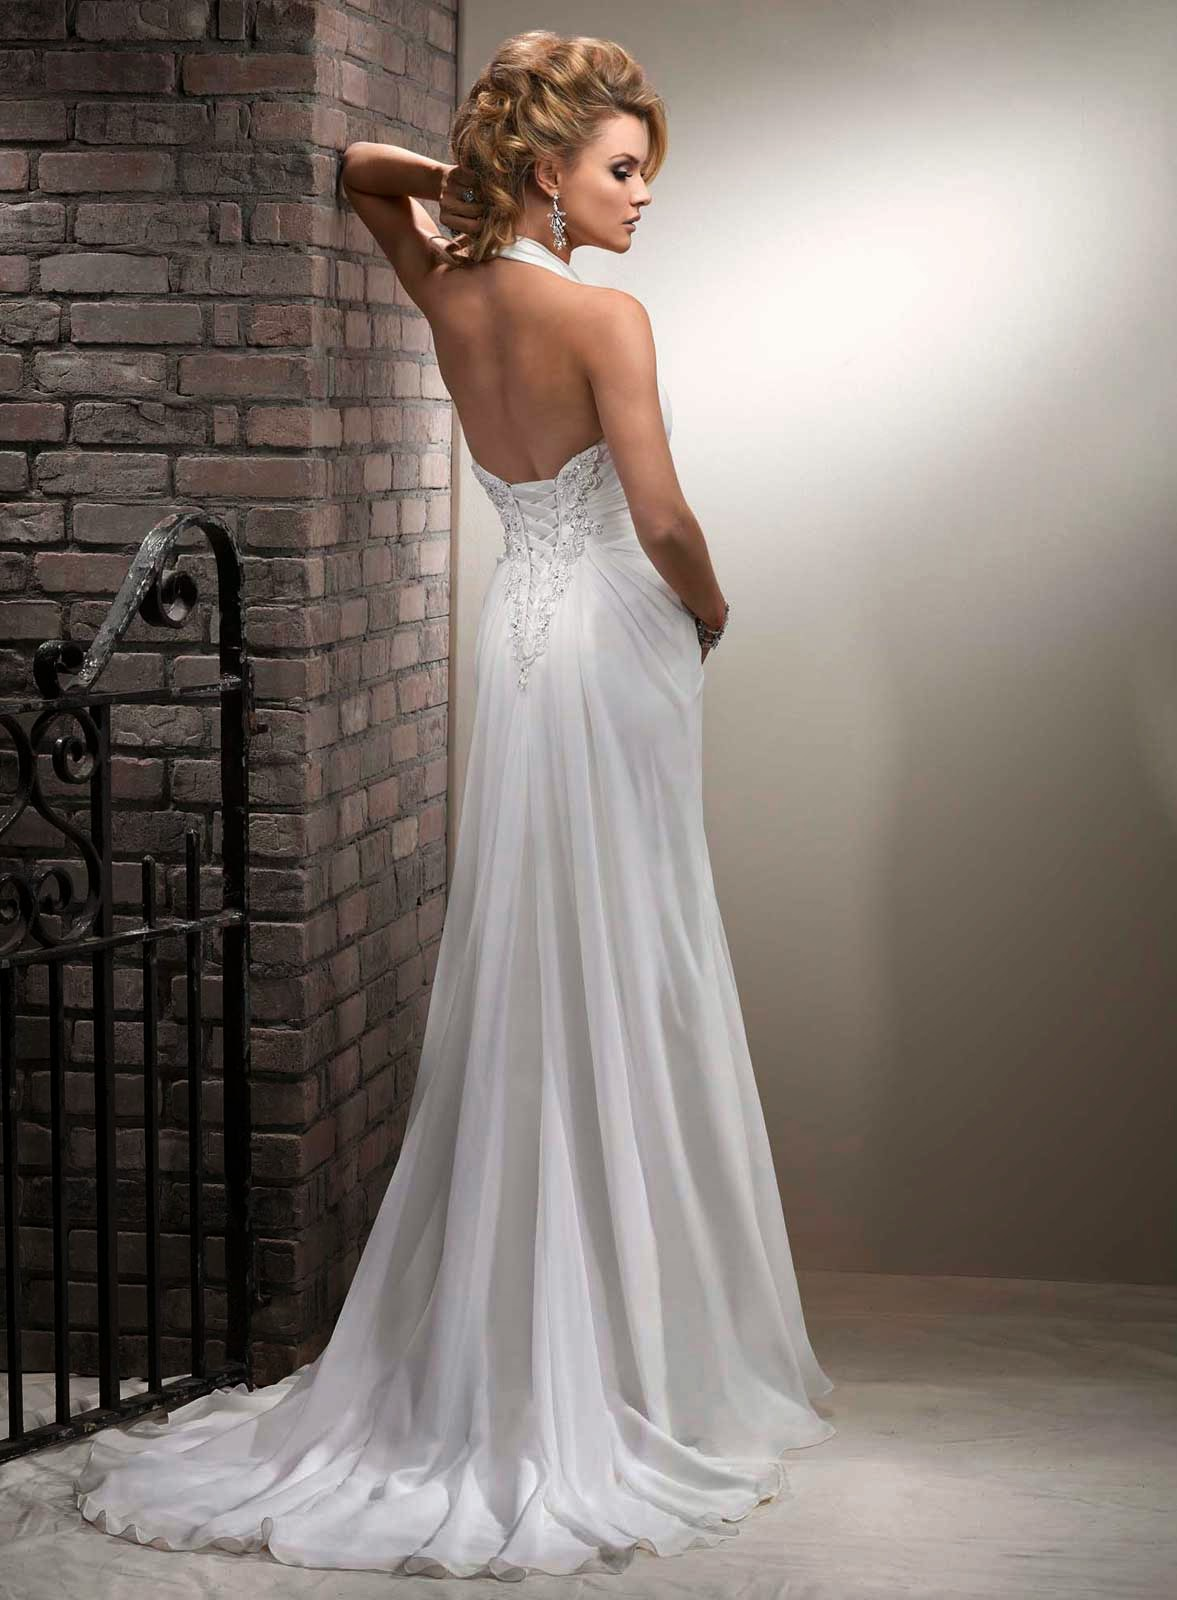 Casual Wedding Dresses Ideas for Older Brides